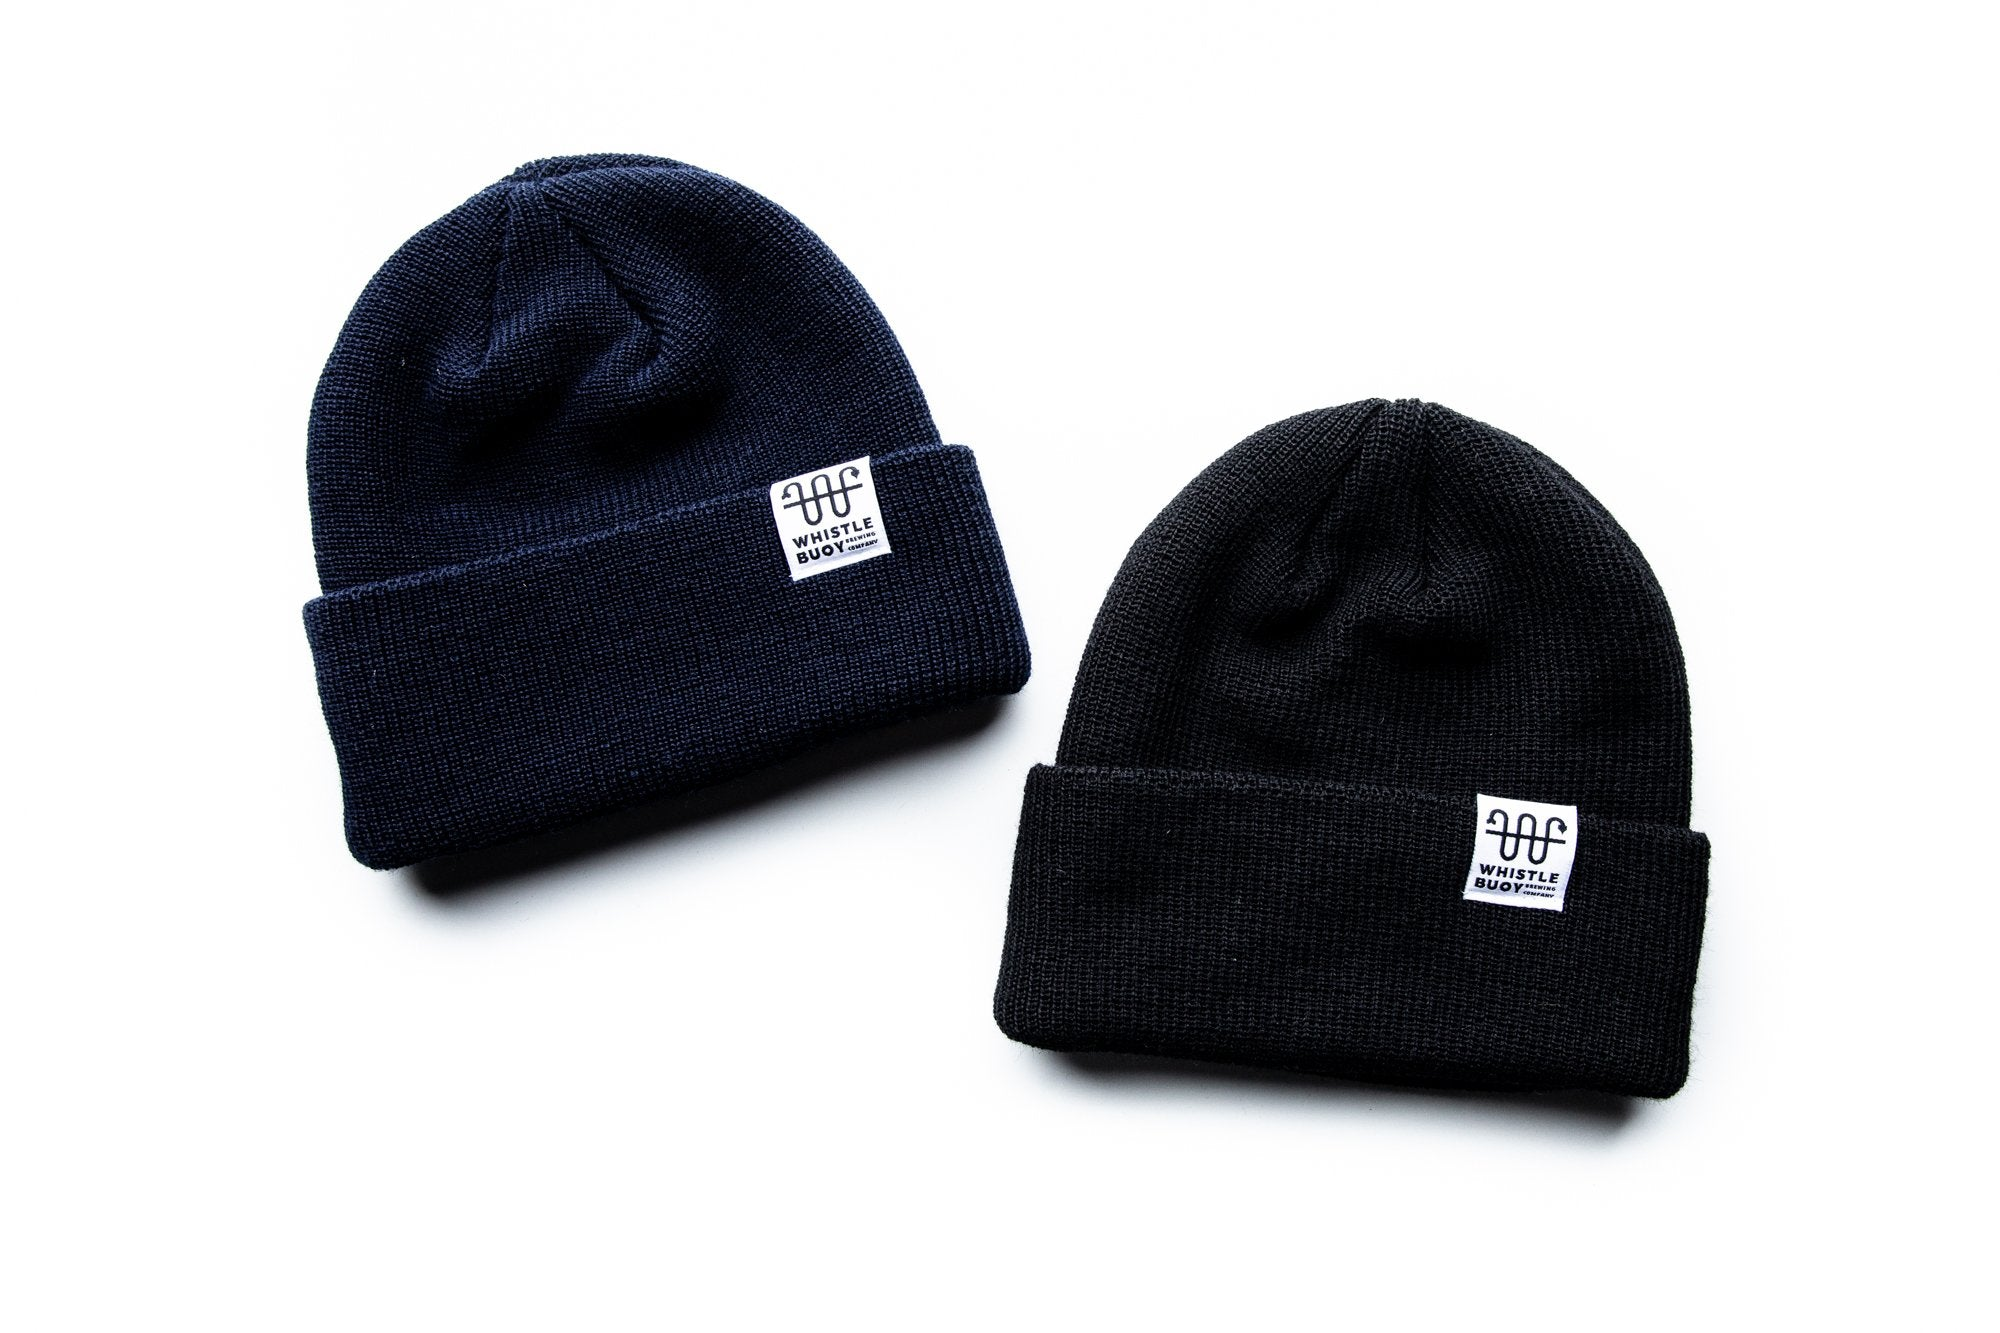 Two Whistle Buoy merino blend toques with white logo in blue and black